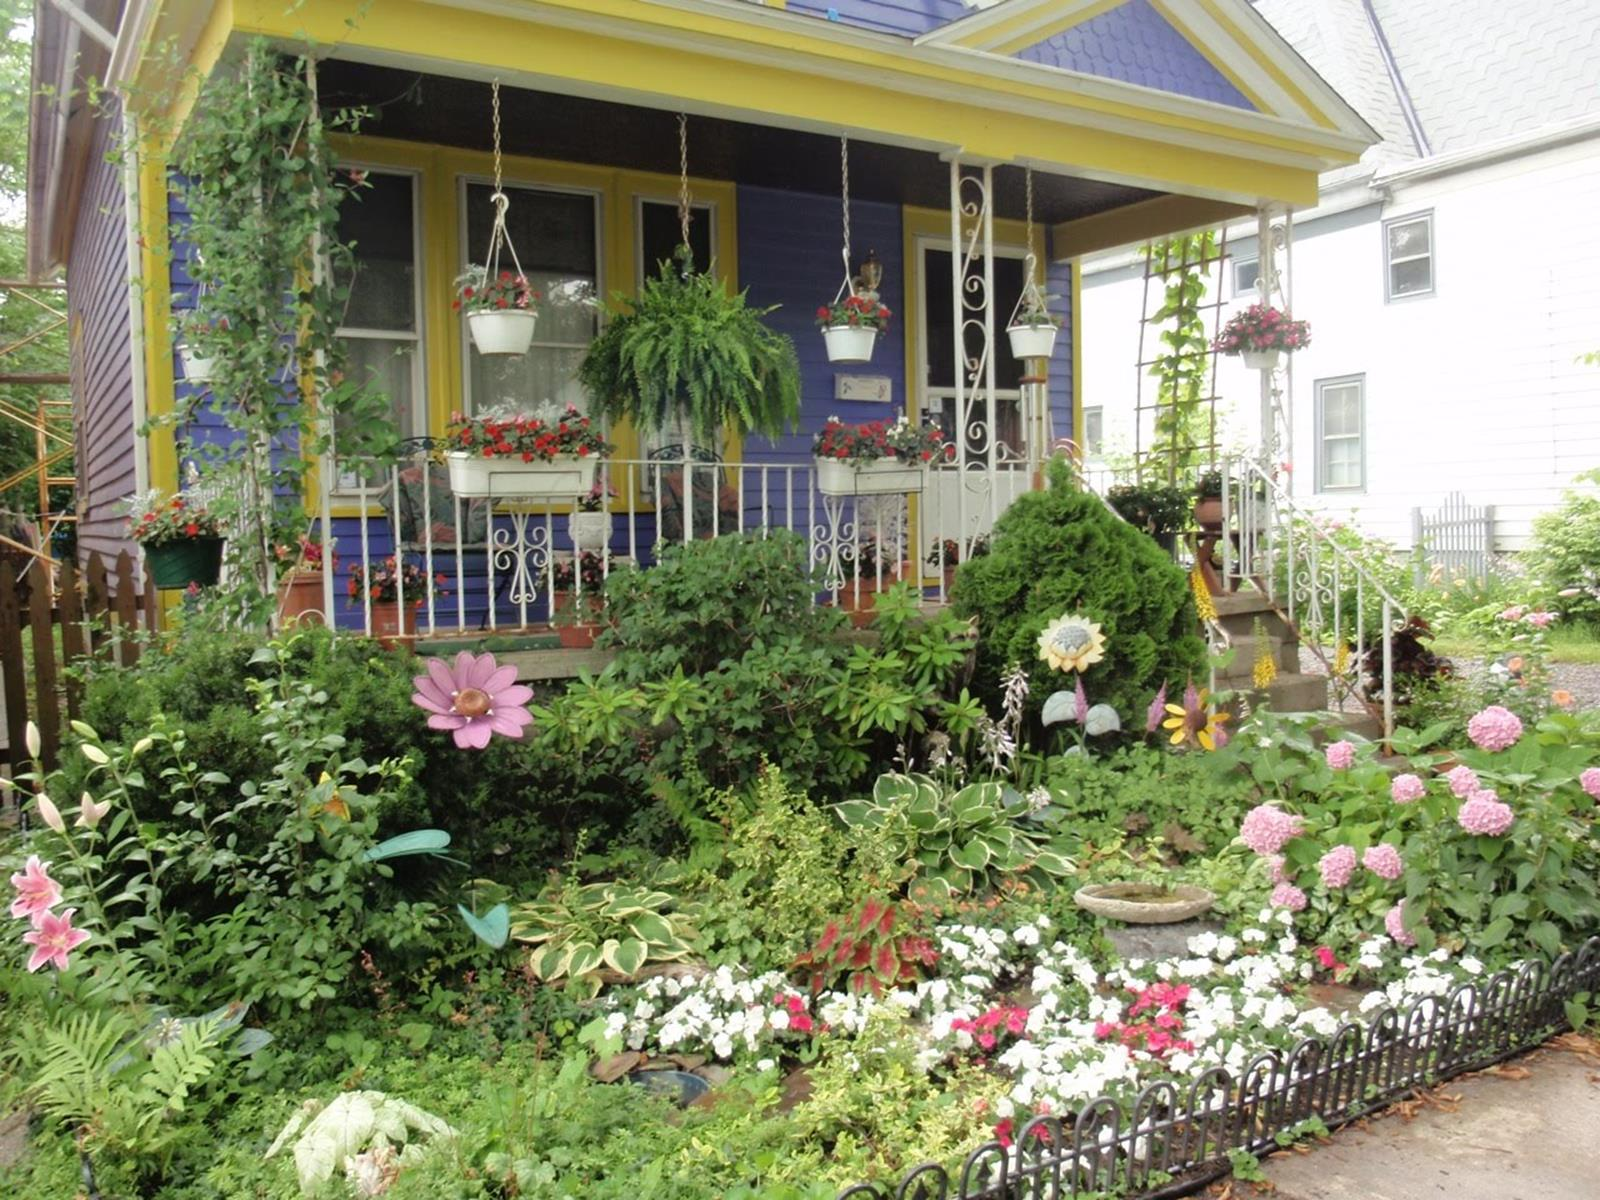 Best Plants for a Cottage Garden and Design Ideas 2